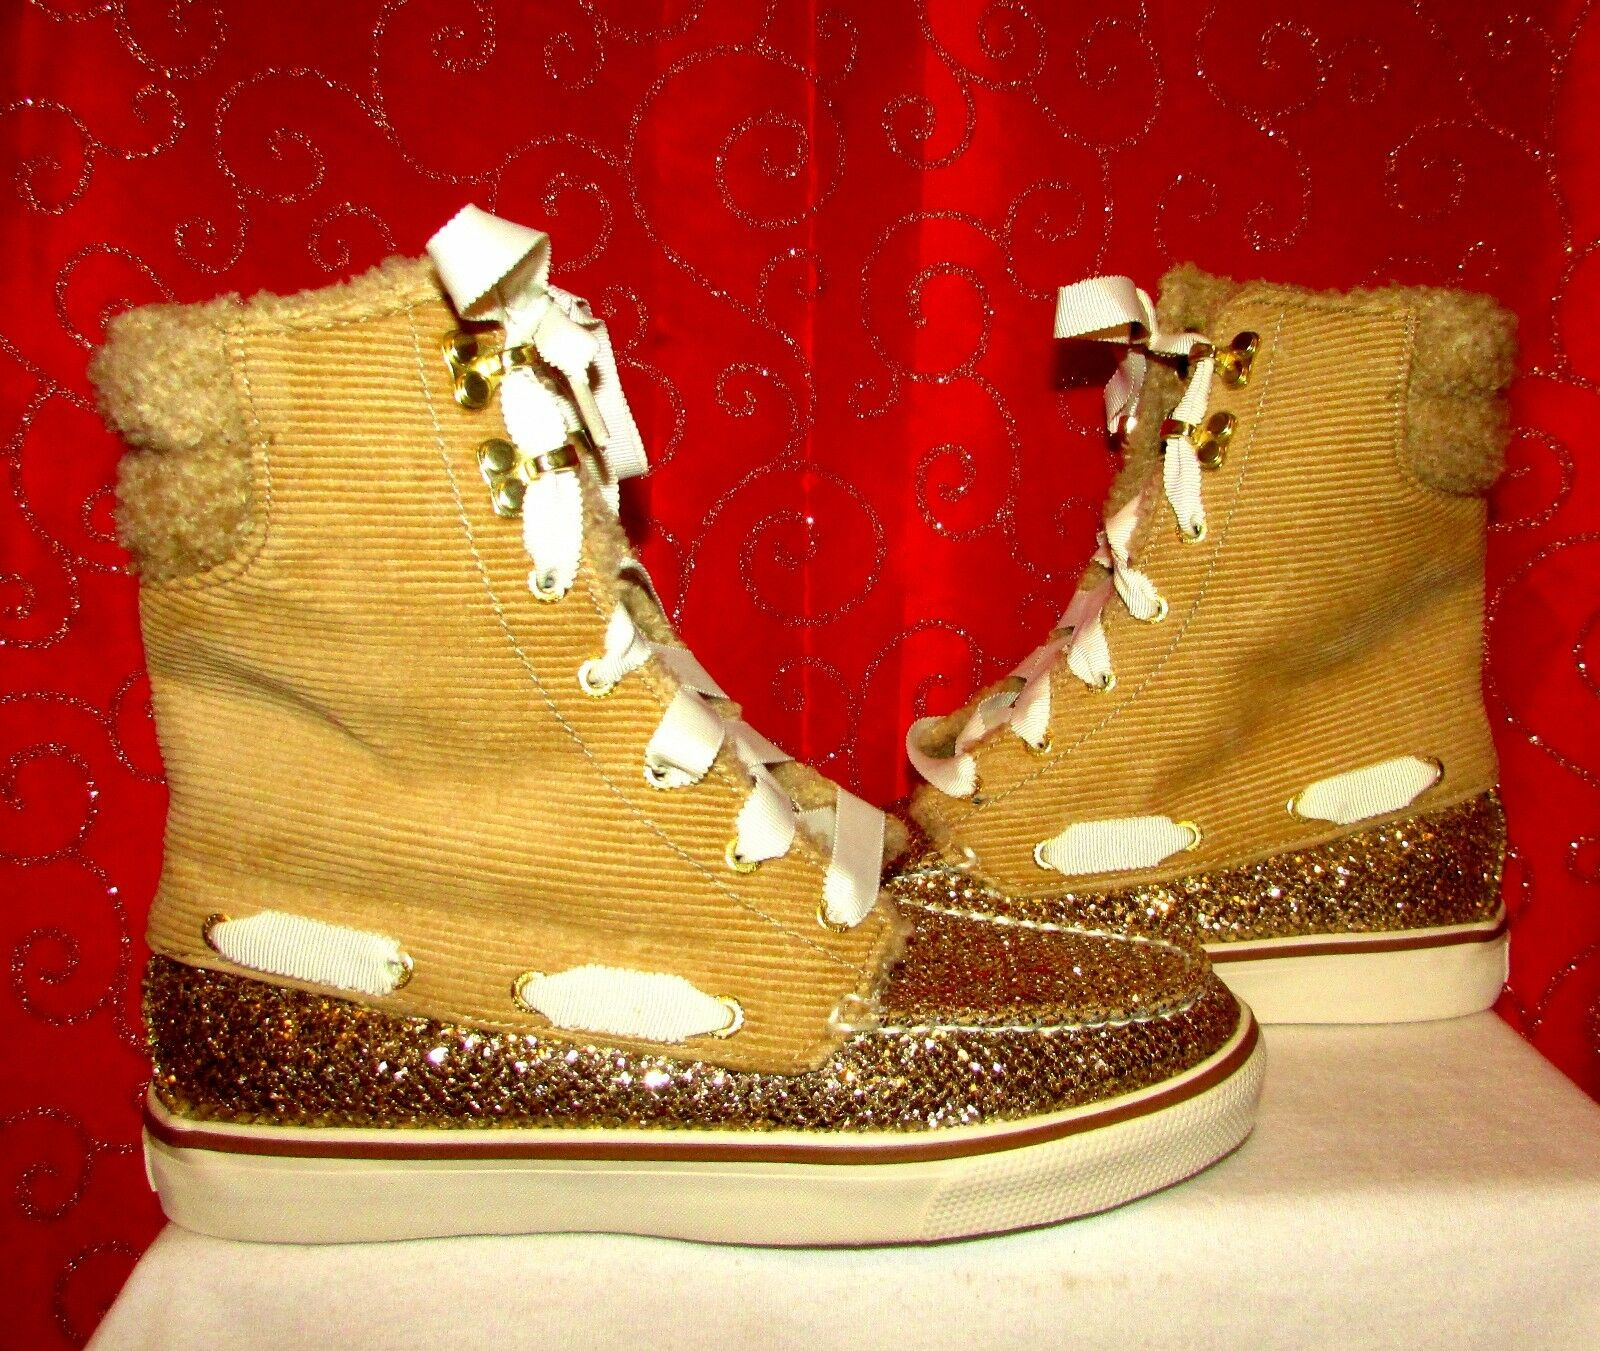 SPERRY TOP SIDER ACKLINS TAN CORDUROY gold GLITTER LACE UP BOOTS WORN ONCE SZ 6